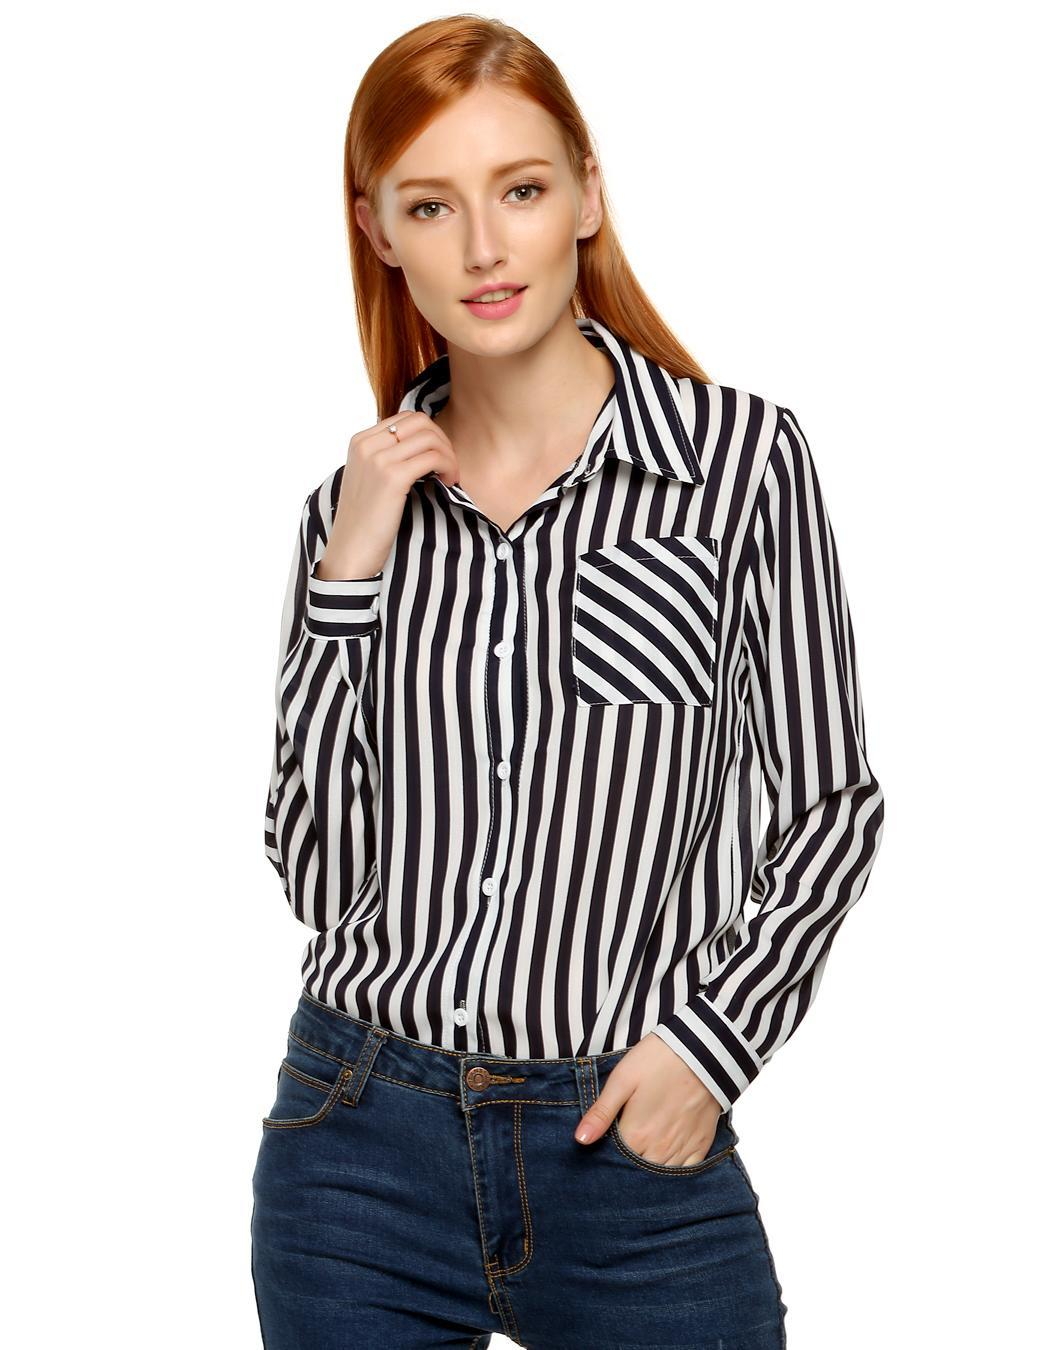 lapel christian single women 20% off code: real — exclusions apply see details from 0% apr financing choose affirm at checkout.